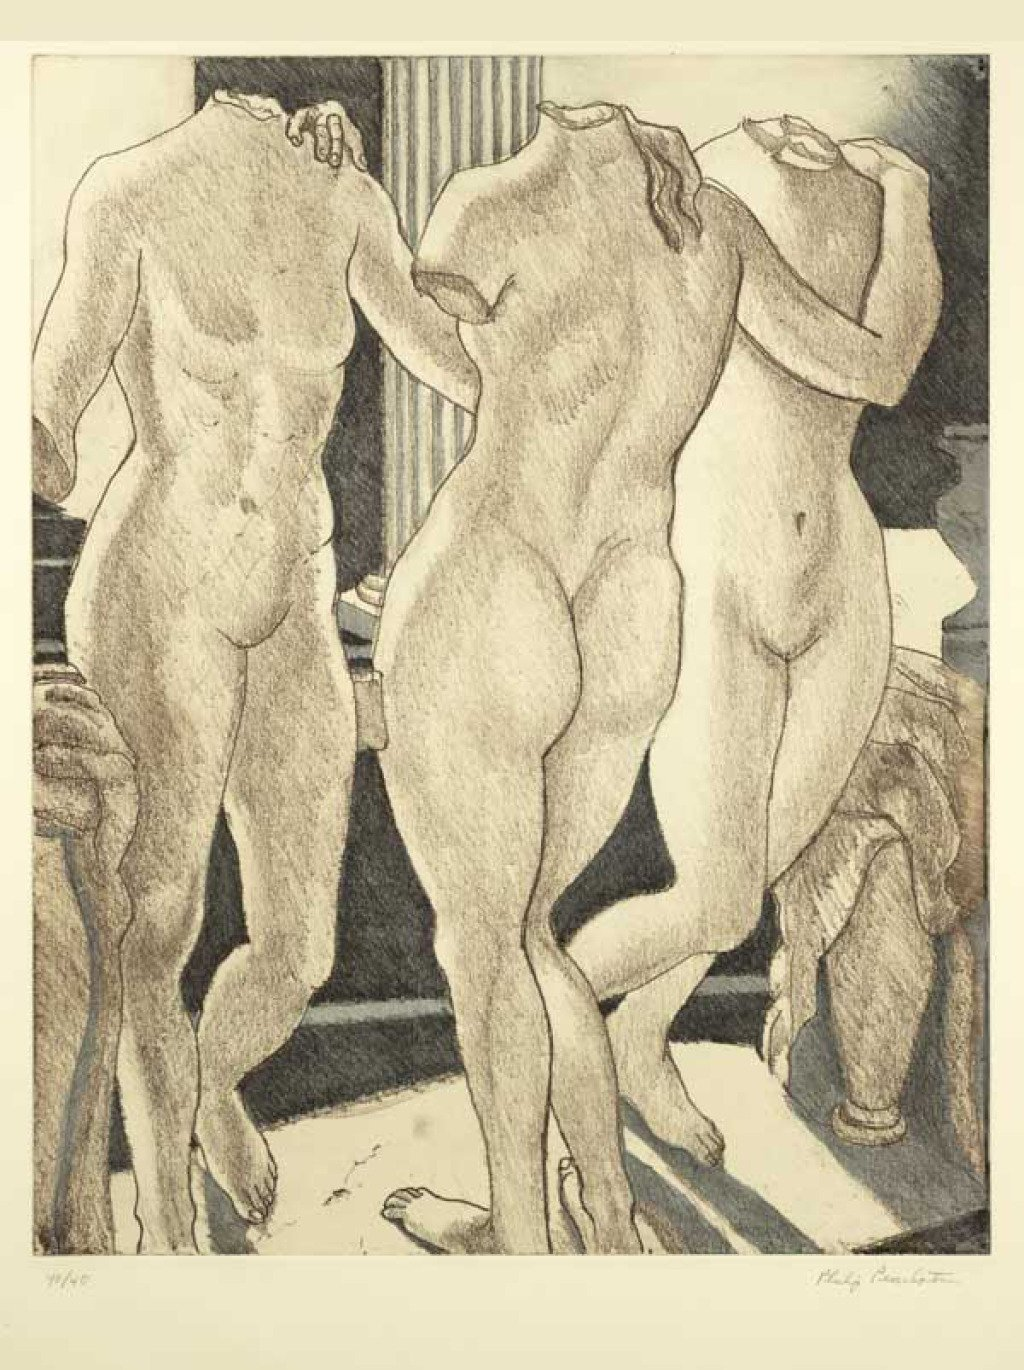 Philip Pearlstein, The Three Graces